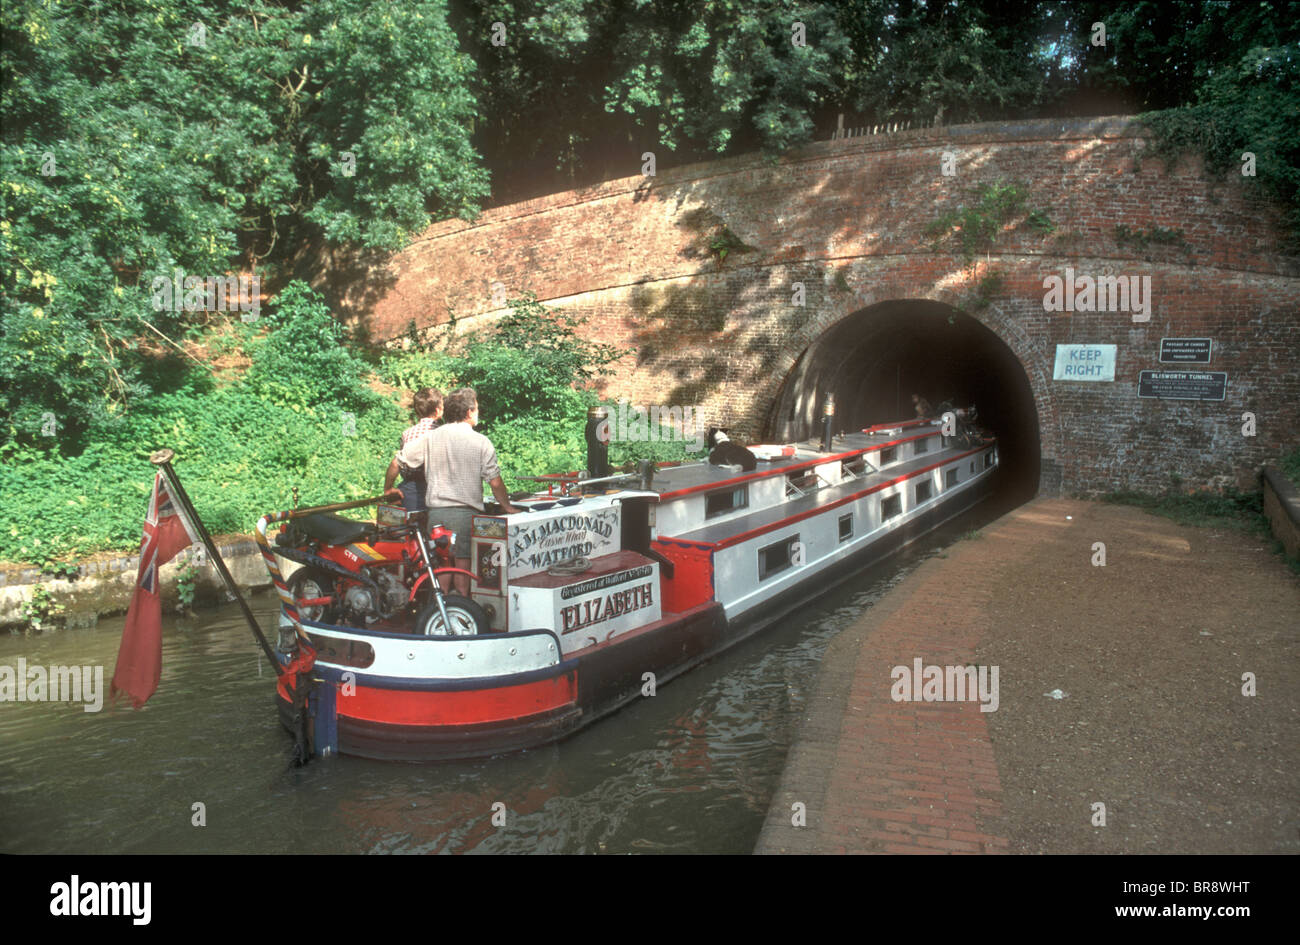 1936 narrowboat to houseboat conversion at Grand Union Canal at Blisworth Tunnel Stoke Bruerne Northamptonshire - Stock Image